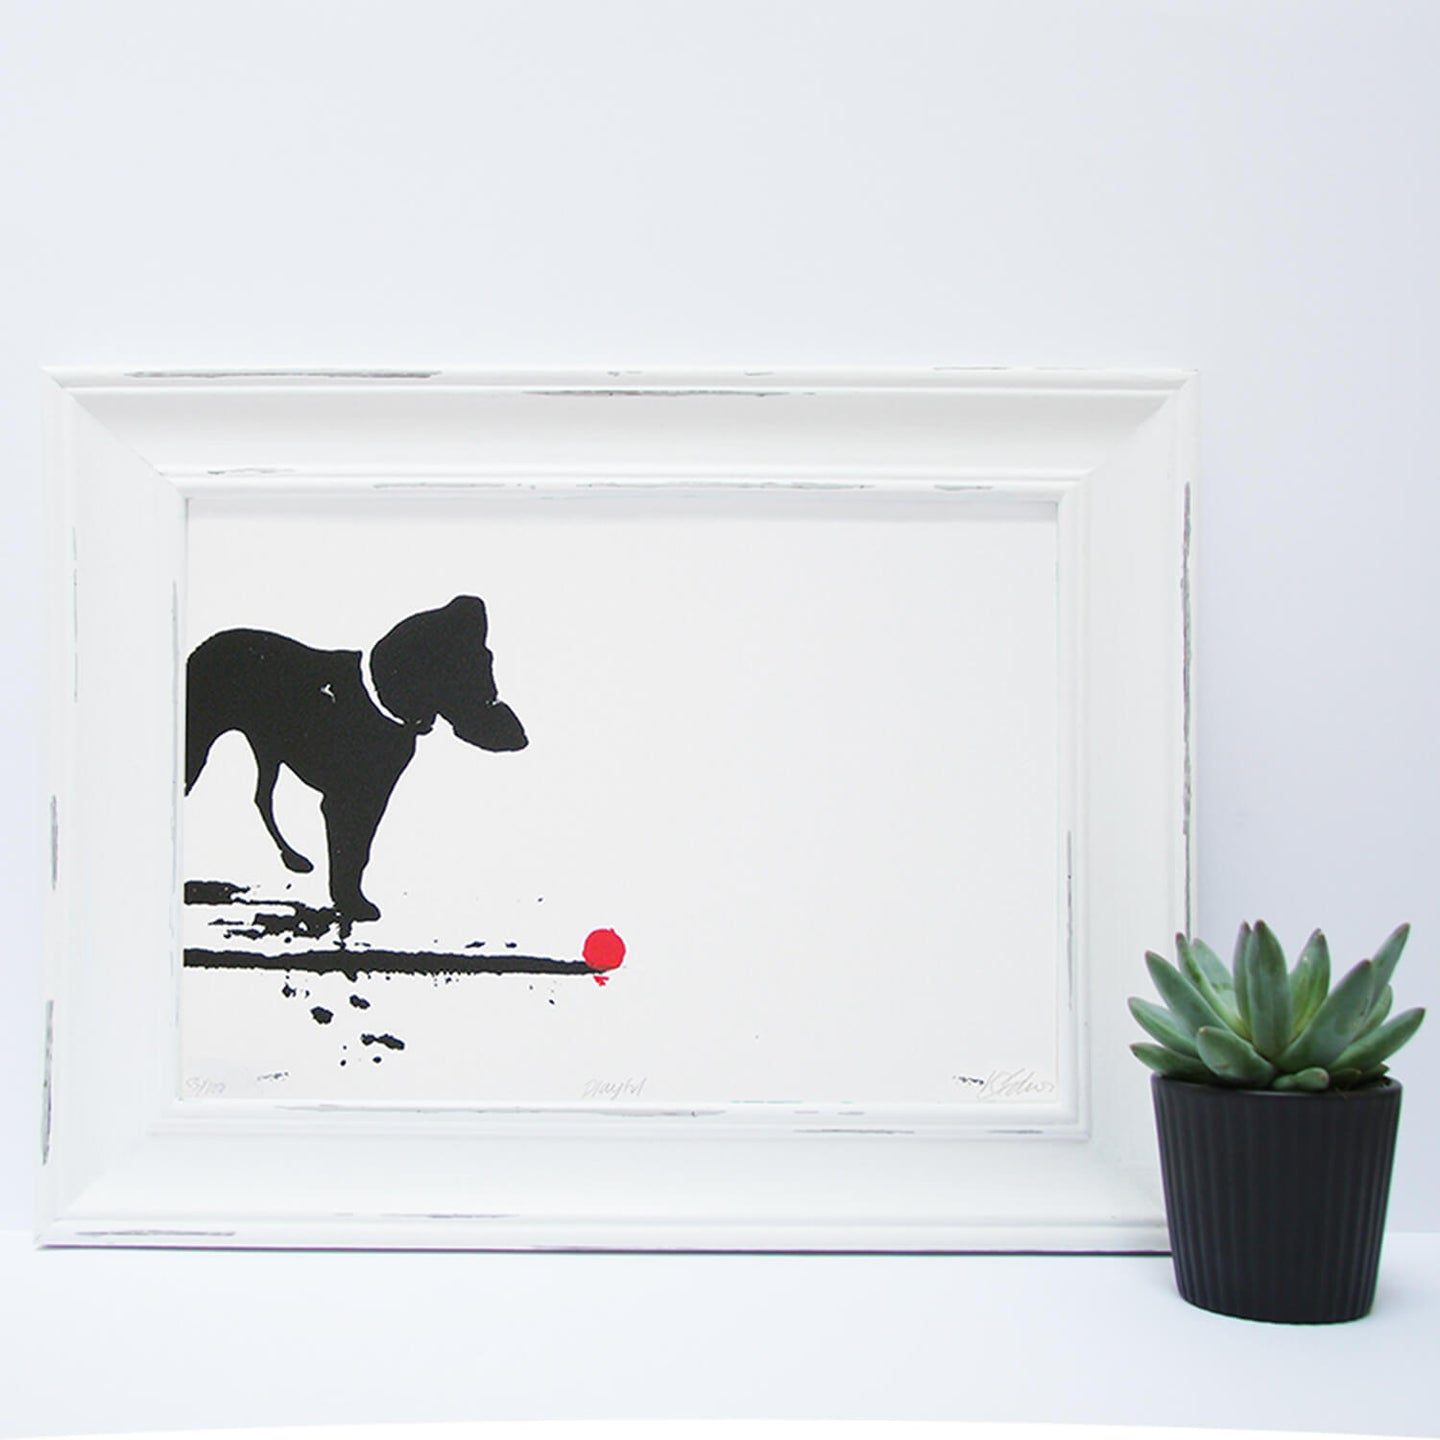 'Playful' Original Handmade Silk Screen Print